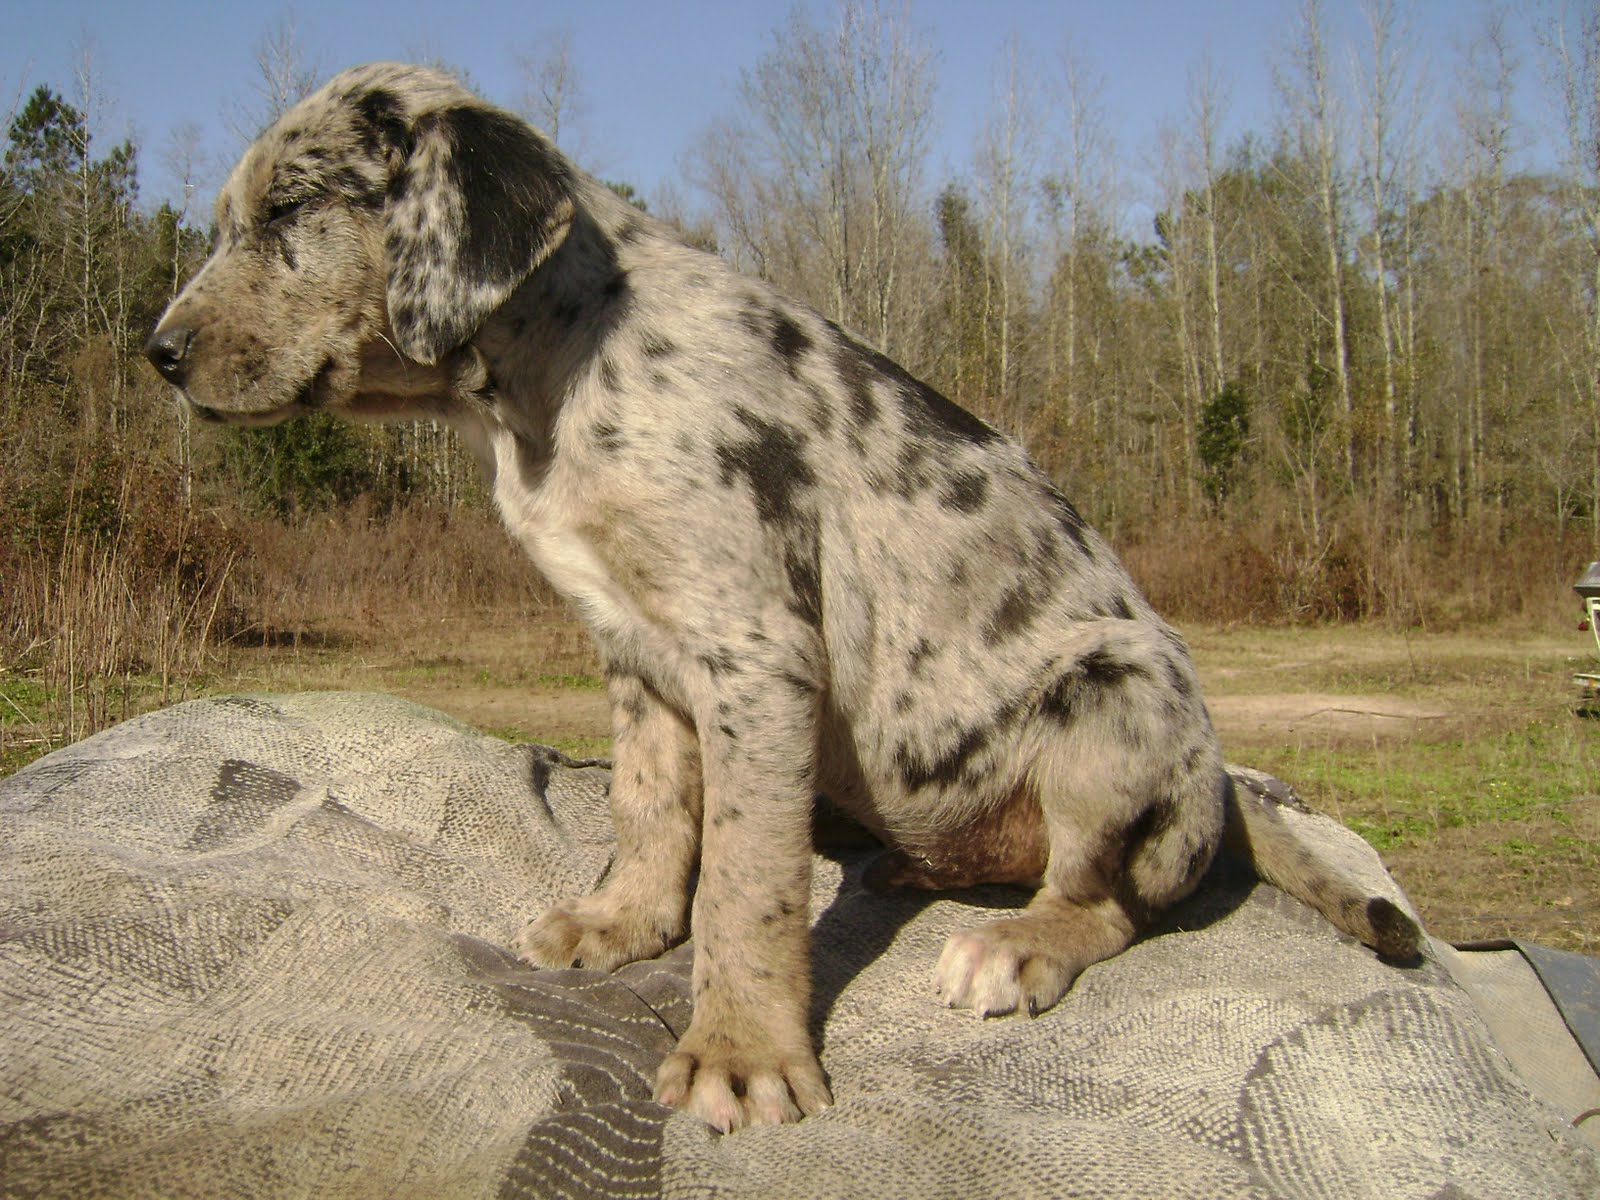 Catahoula Cur Dog: Catahoula Datahoula Dur Dog Picnic Breed